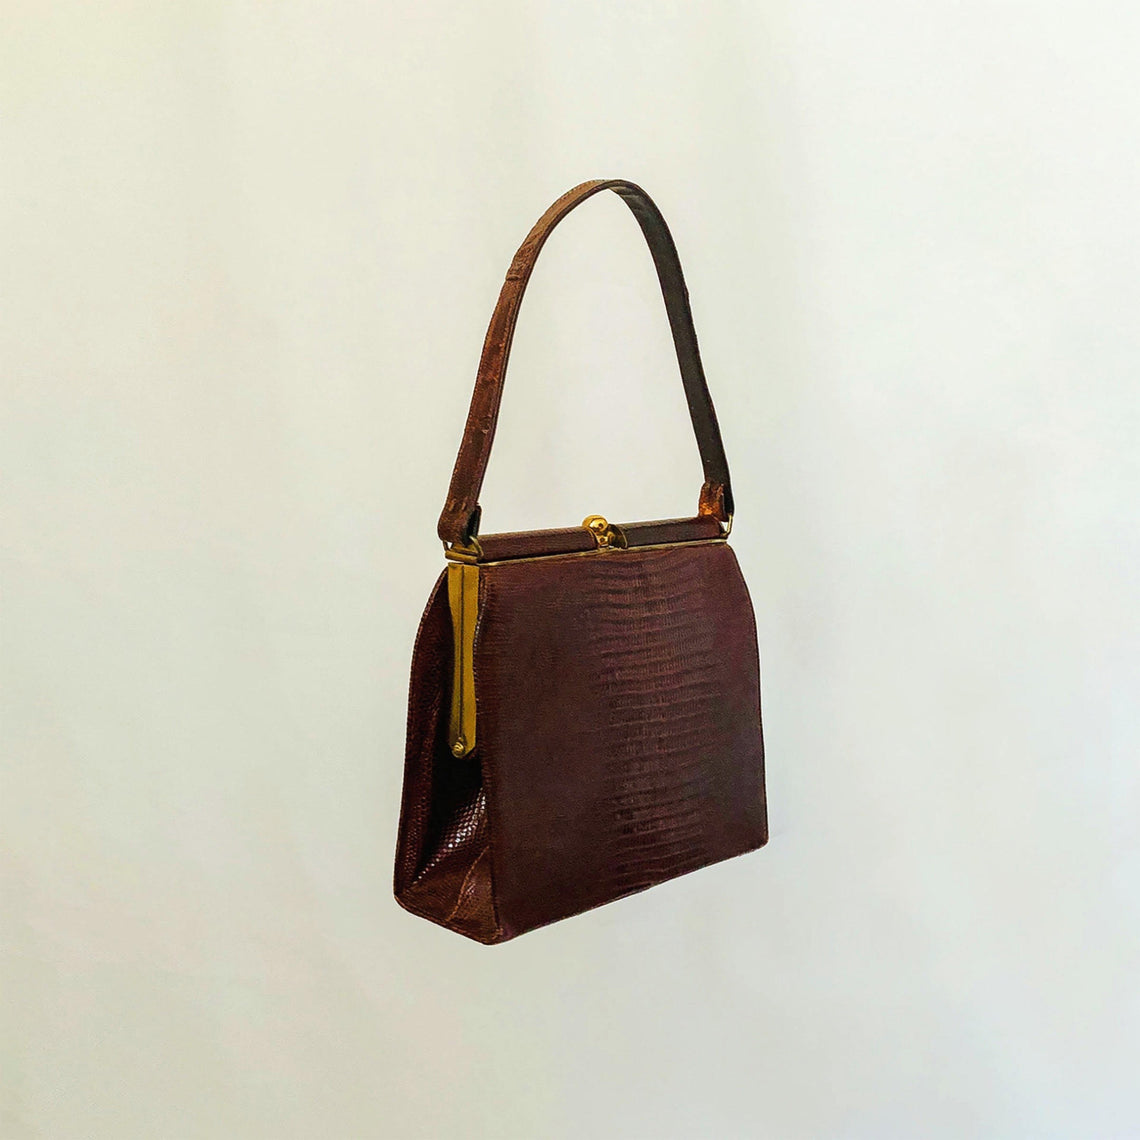 VINTAGE GOLD-FRAMED, GENUINE LIZARD LEATHER BAG | BROWN